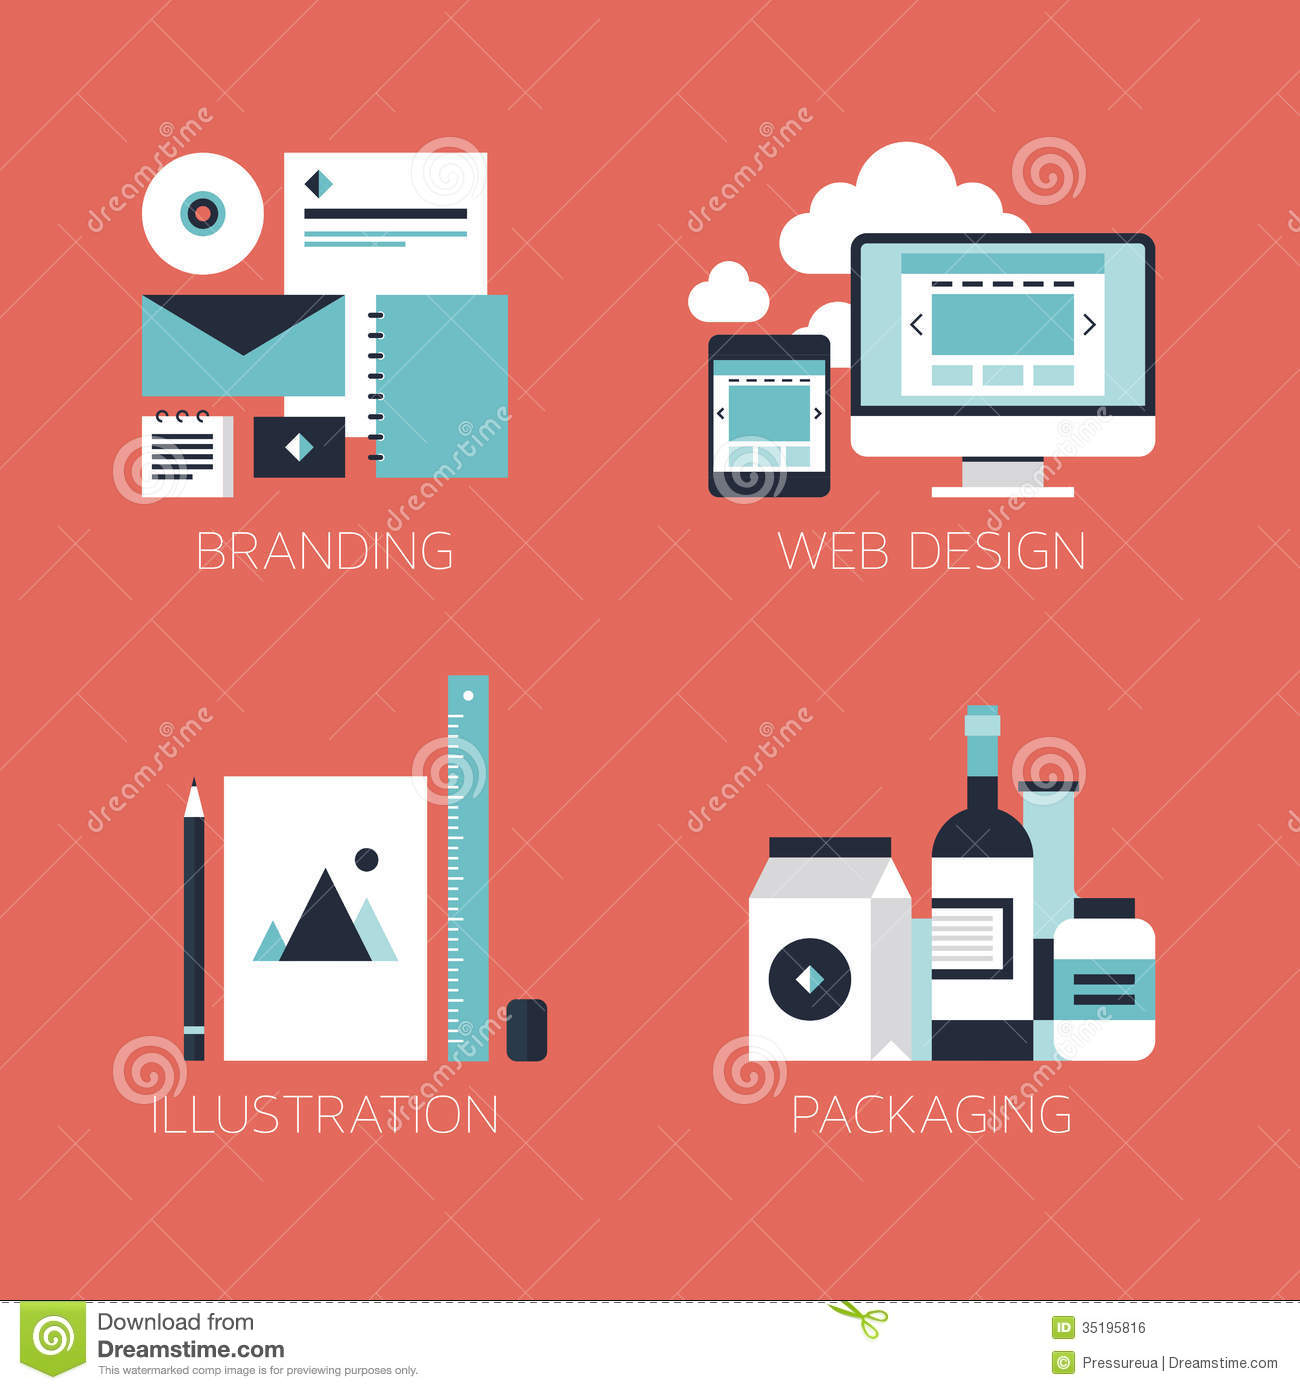 Vector Illustration Web Designs: Flat Design Corporate Style Icons Royalty Free Stock Image